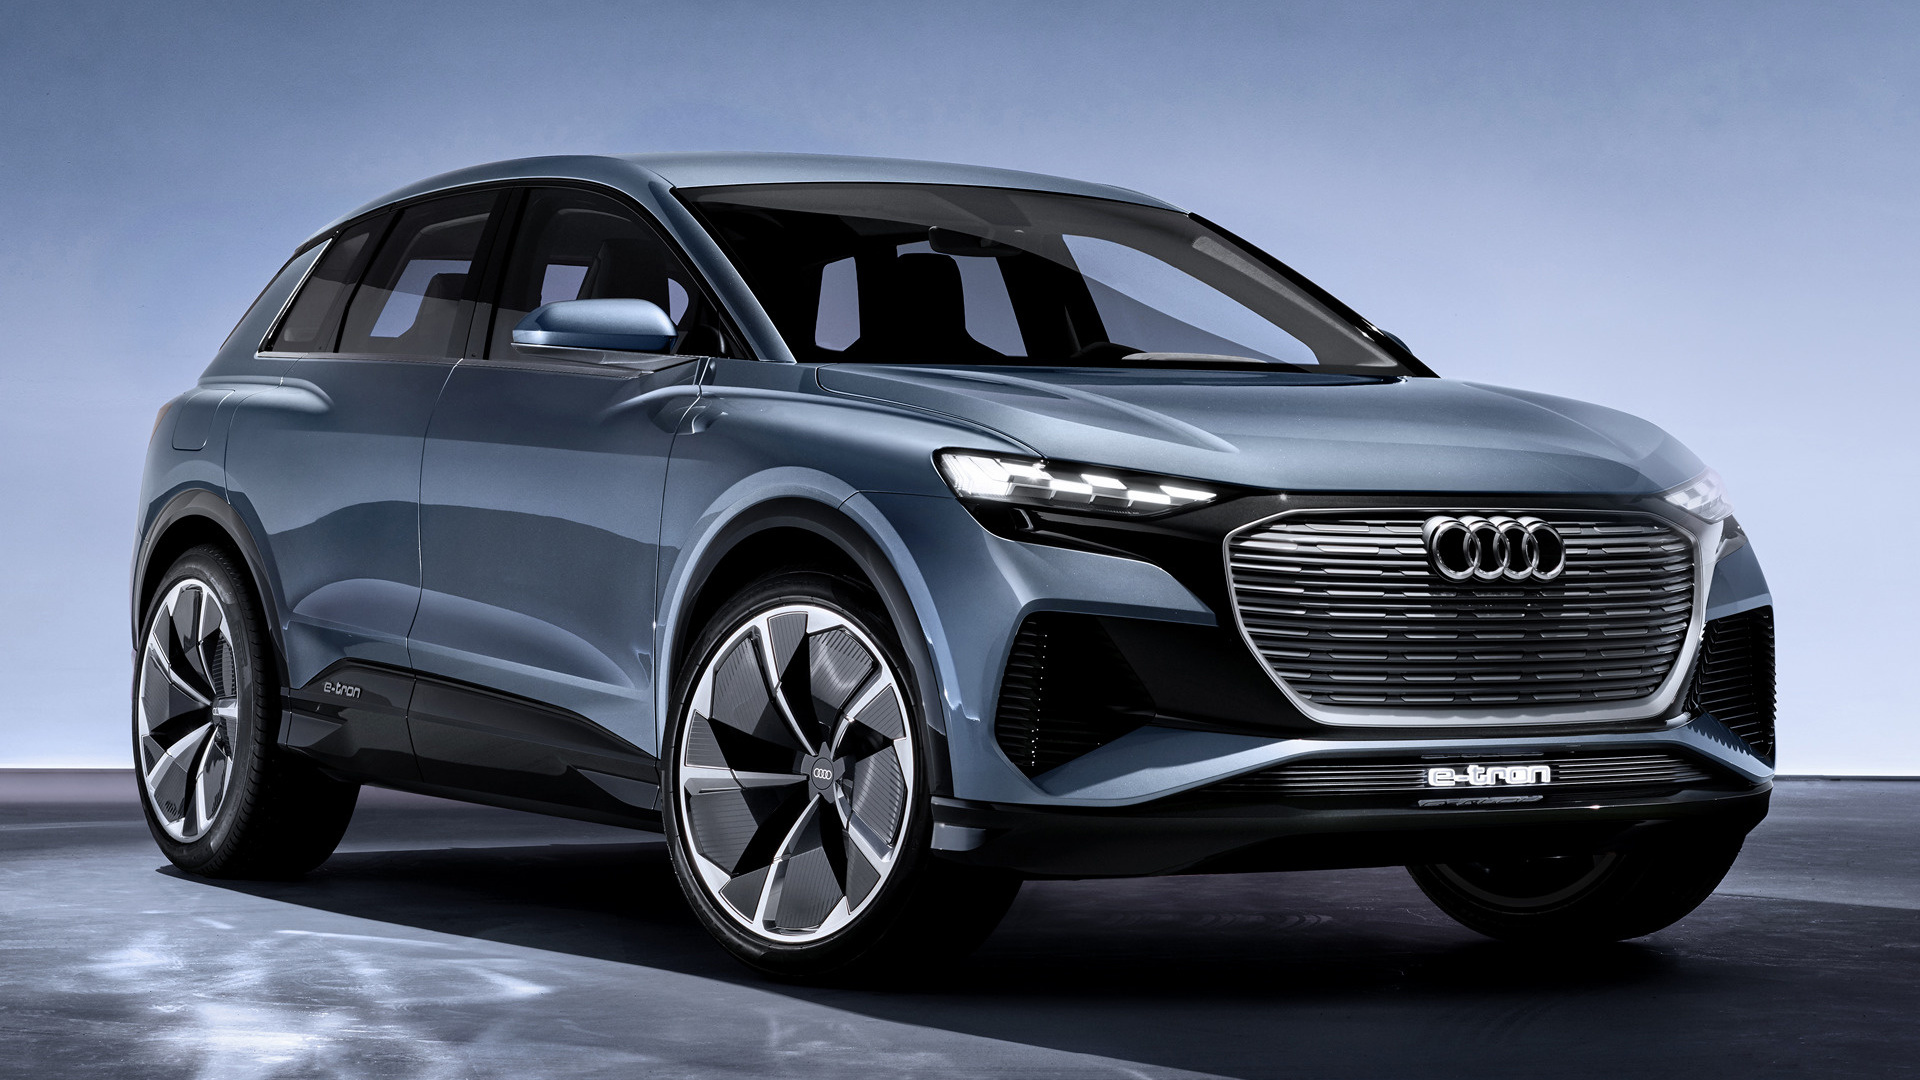 2019 Audi Q4 E-Tron concept - Wallpapers and HD Images ...